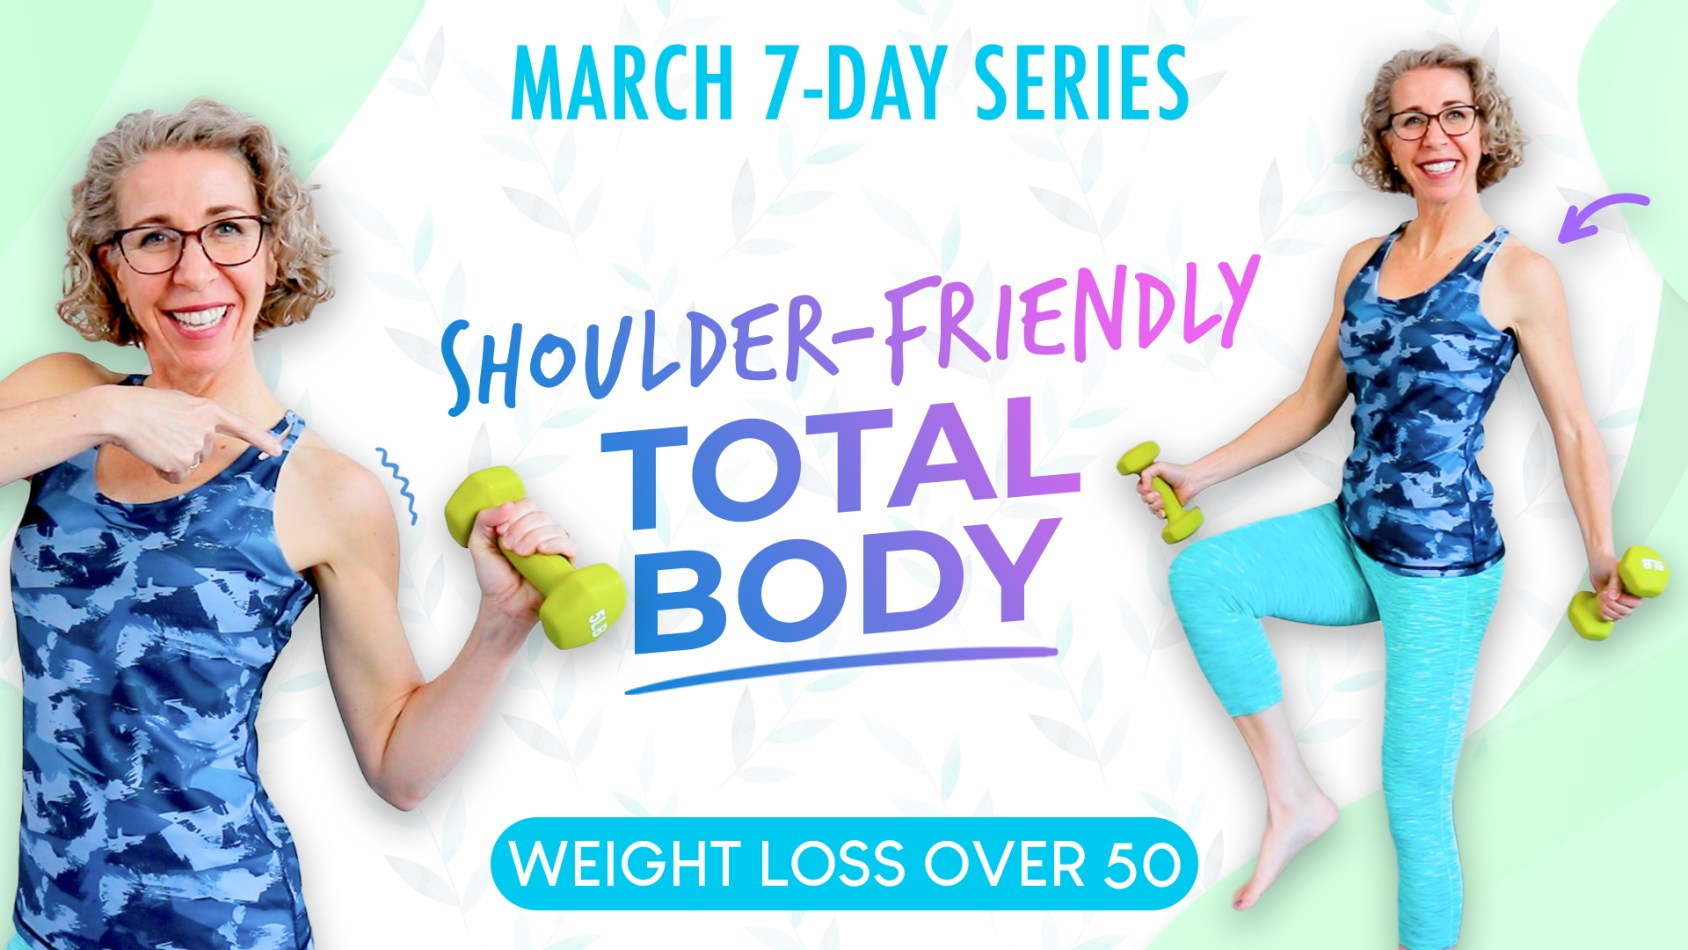 SHOULDER-FRIENDLY Weight Loss Workout, Get LEAN + STRONG ???? Pahla B Fitness